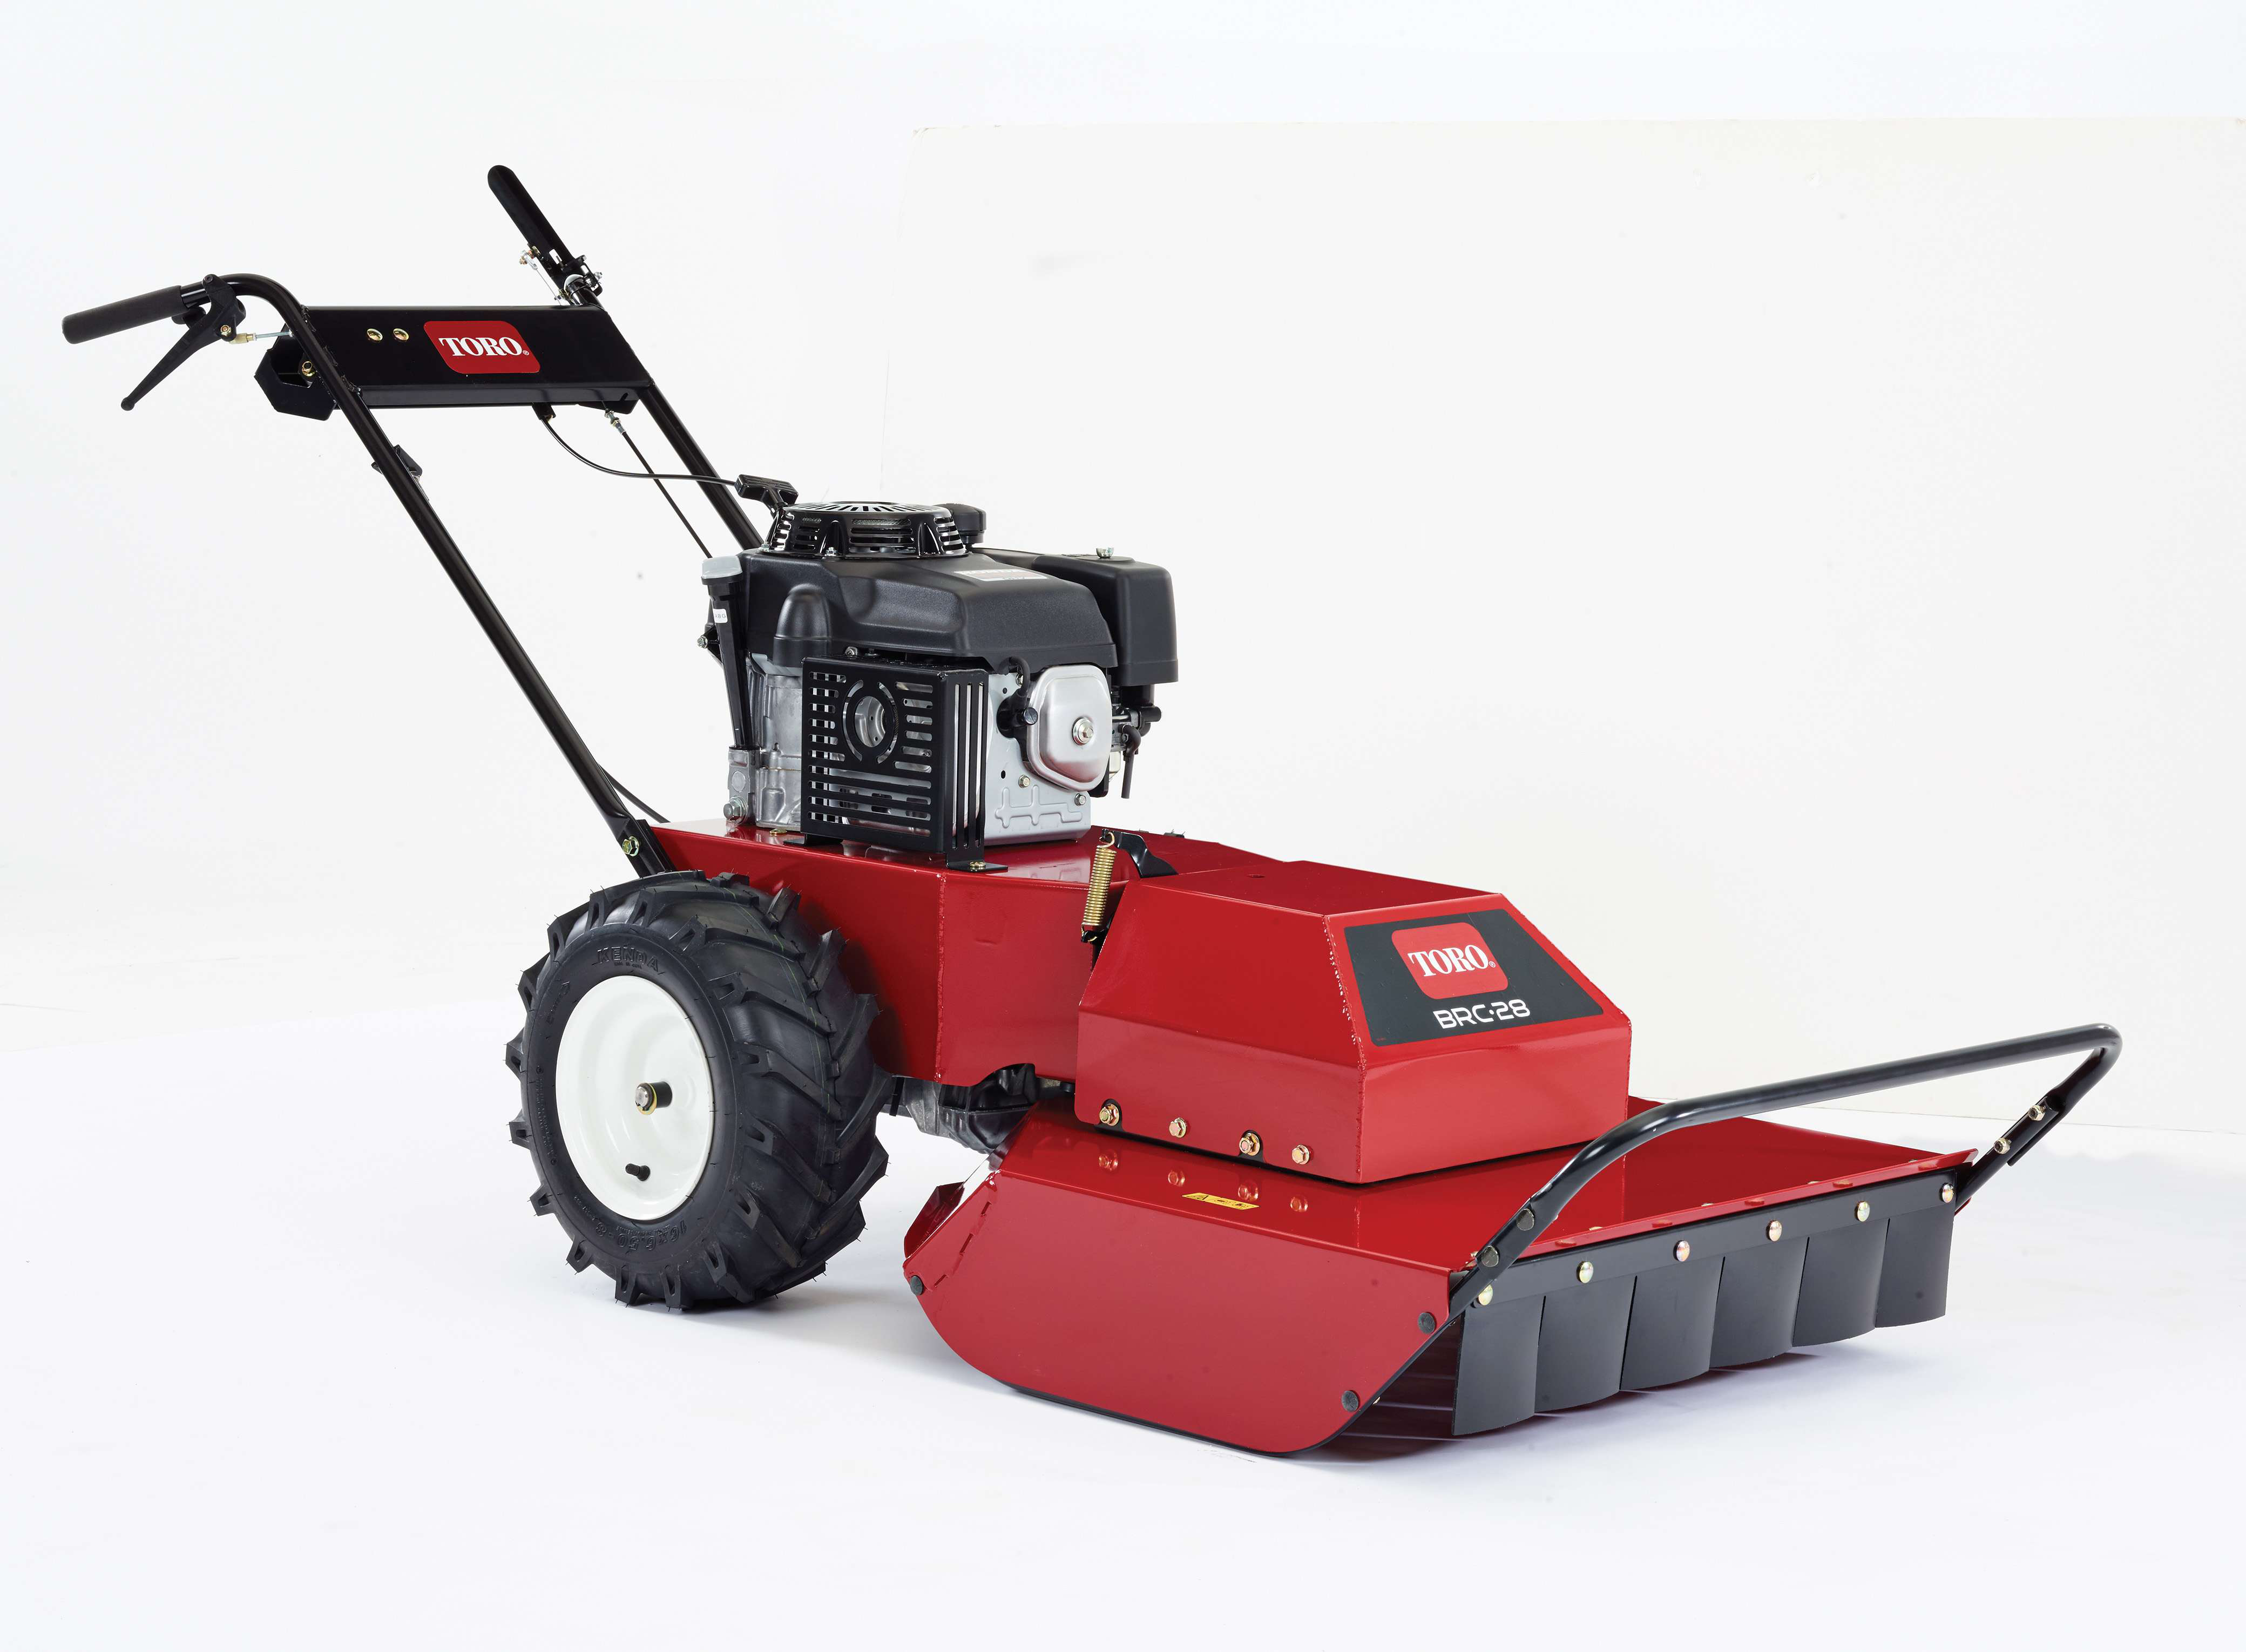 Toro Rotary Mowers : Toro introduces new brush cutter to rental industry lineup